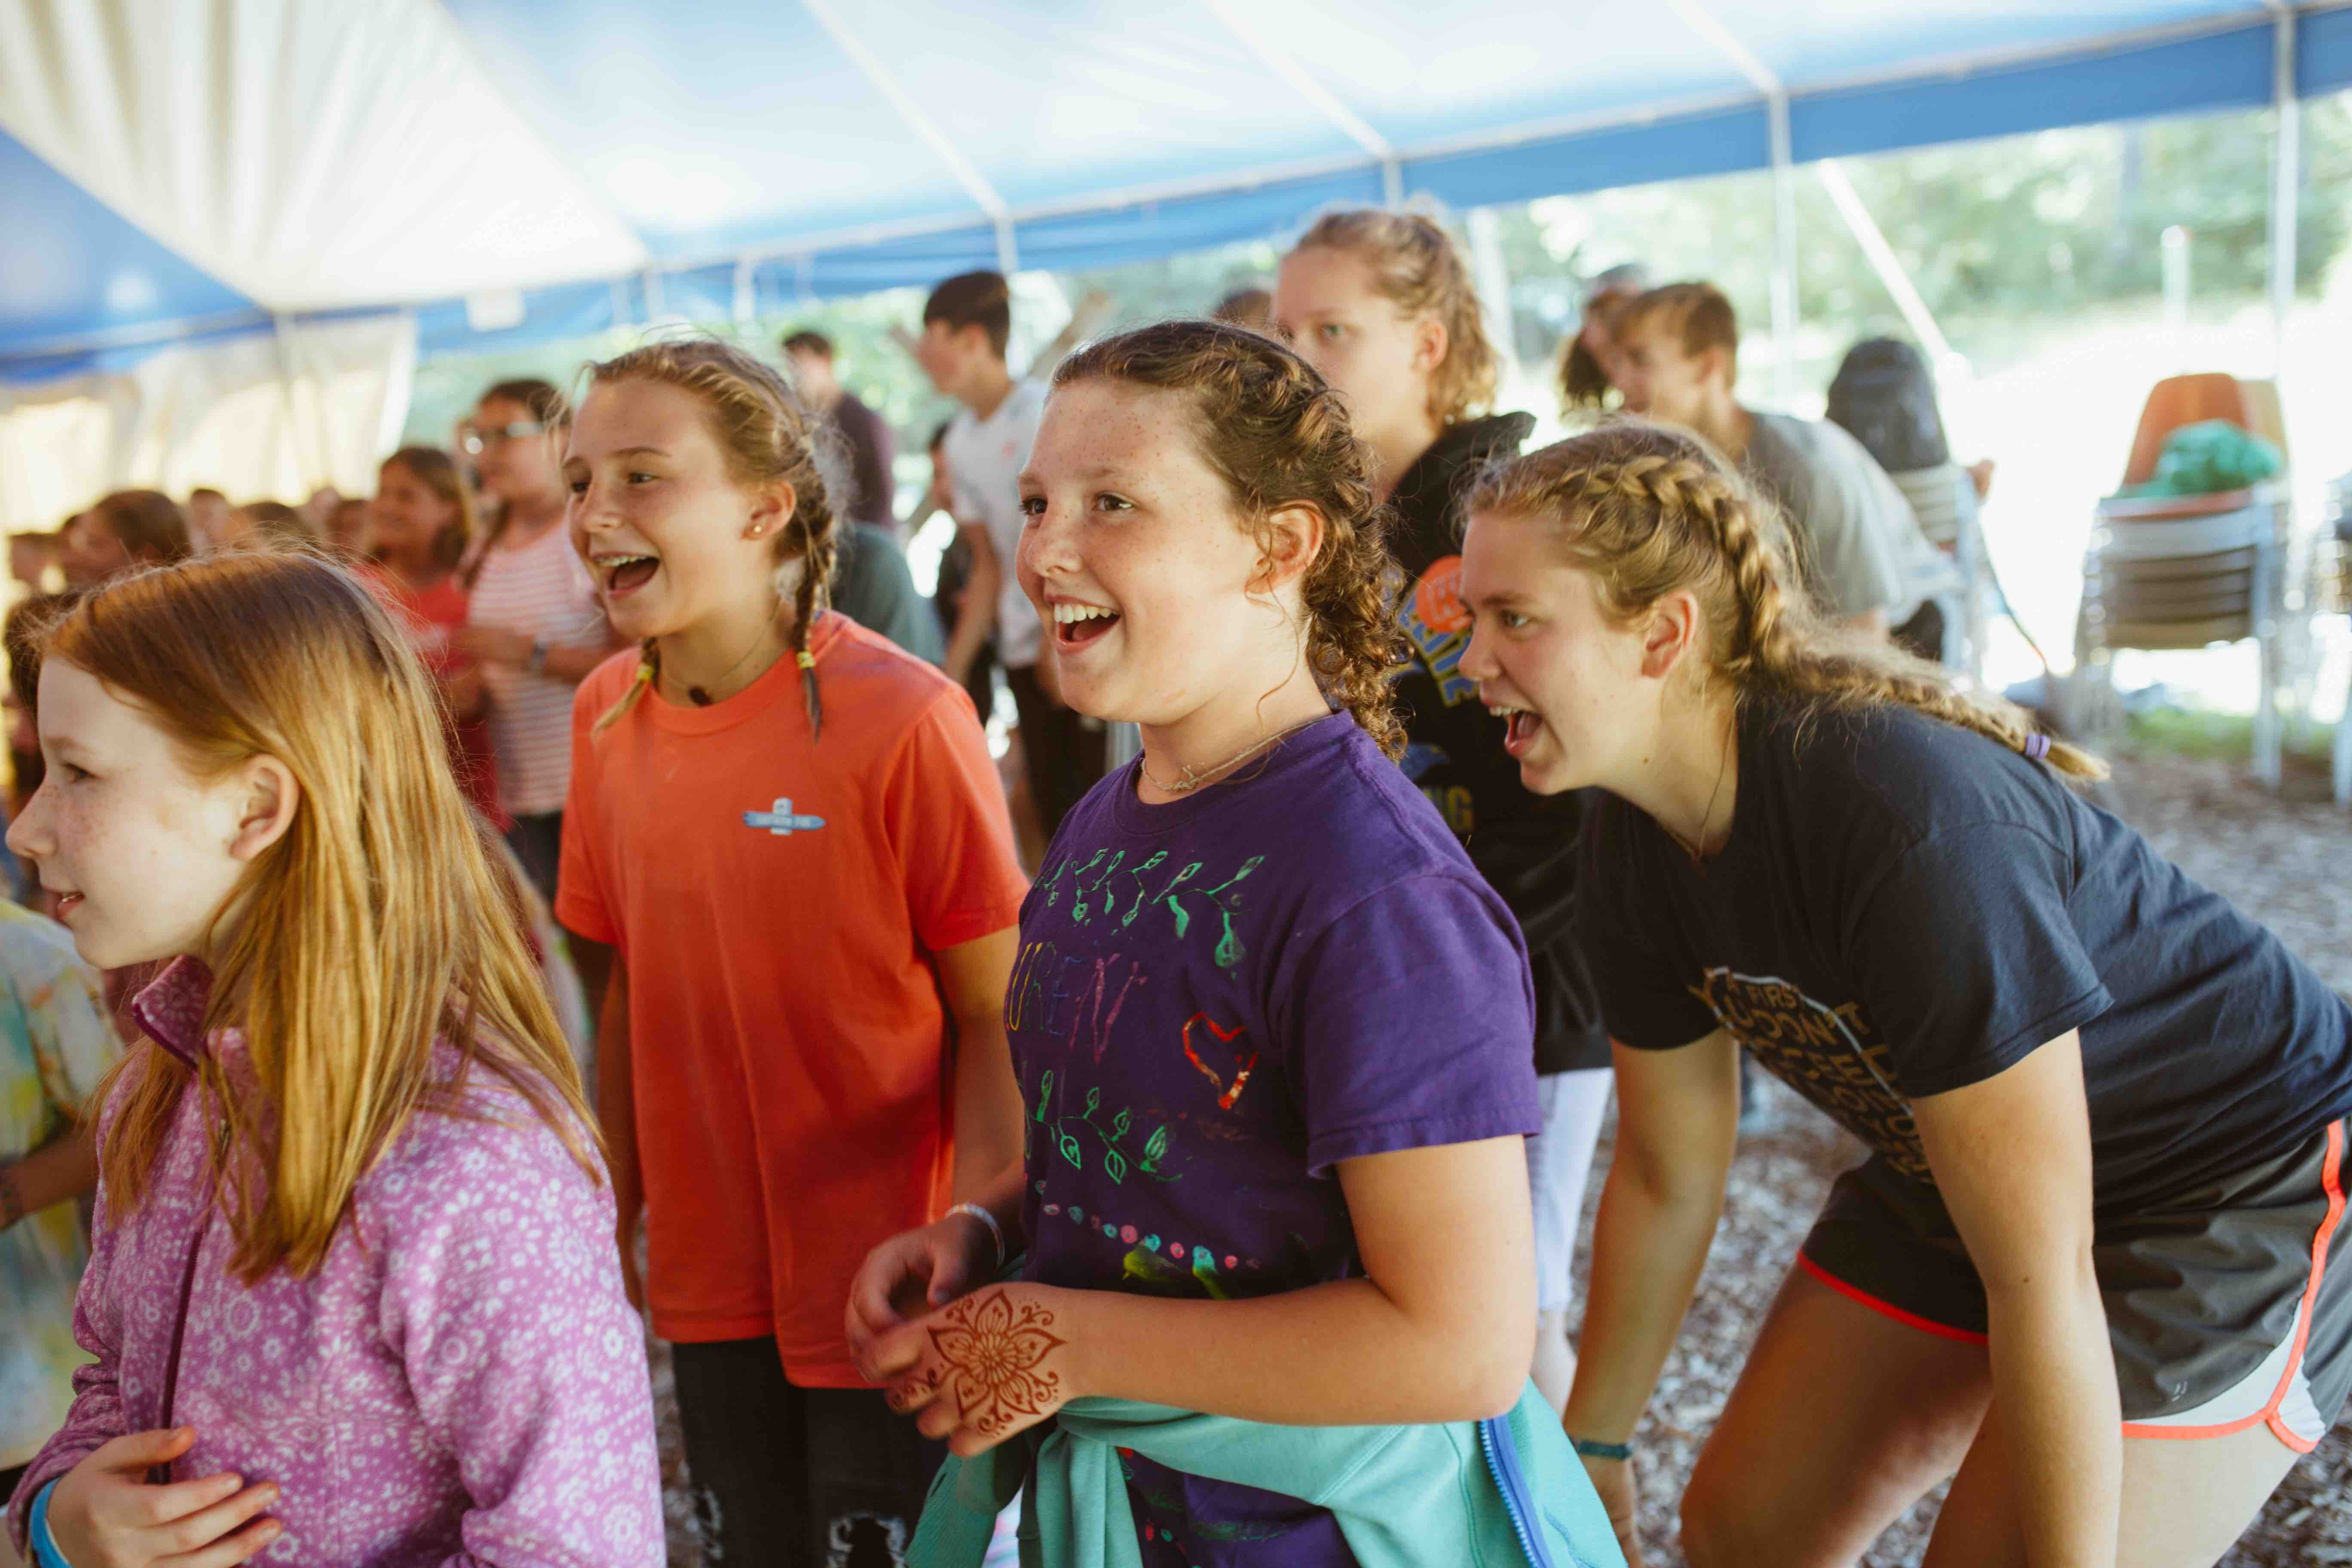 Many of our songs have motions. If you're a first-time camper, don't worry! You'll learn them quickly from the worship leaders and new friends.